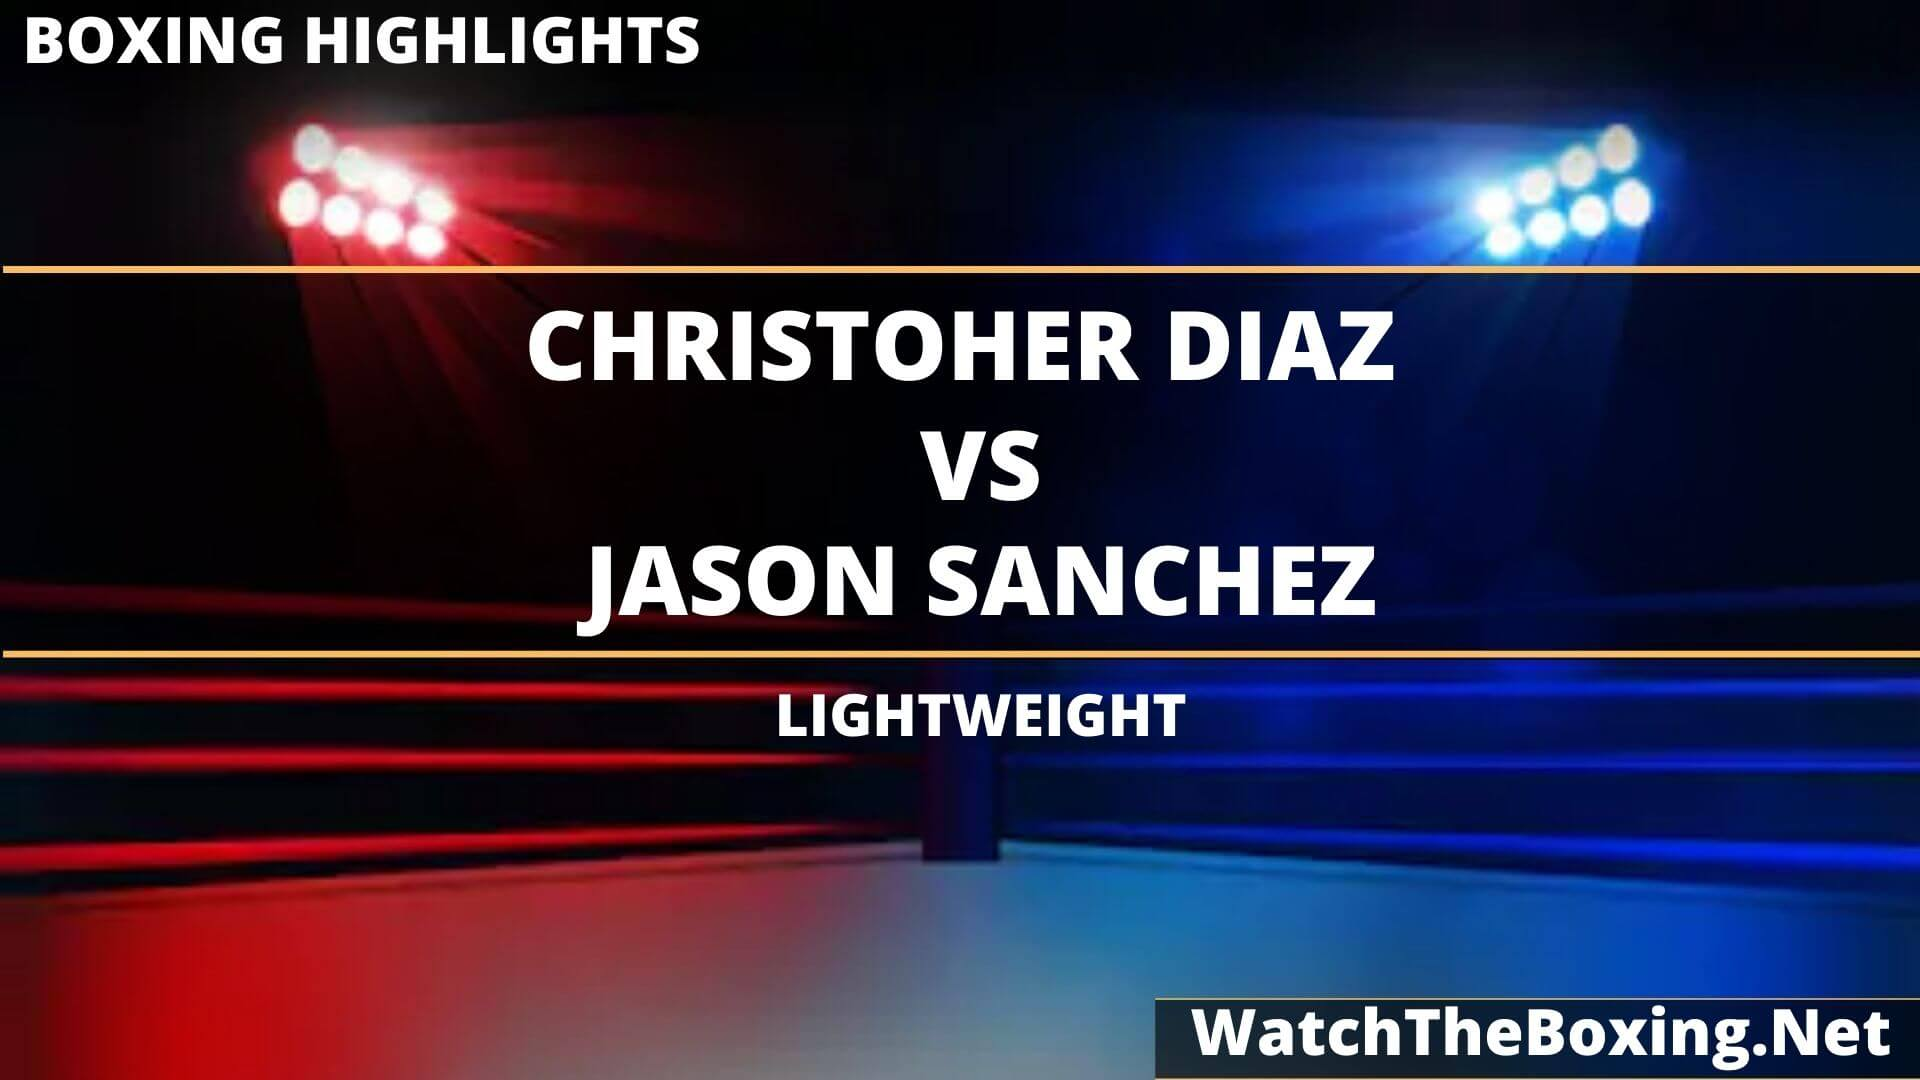 Christopher Diaz Vs Jason Sanchez Highlights 2020 Lightweight